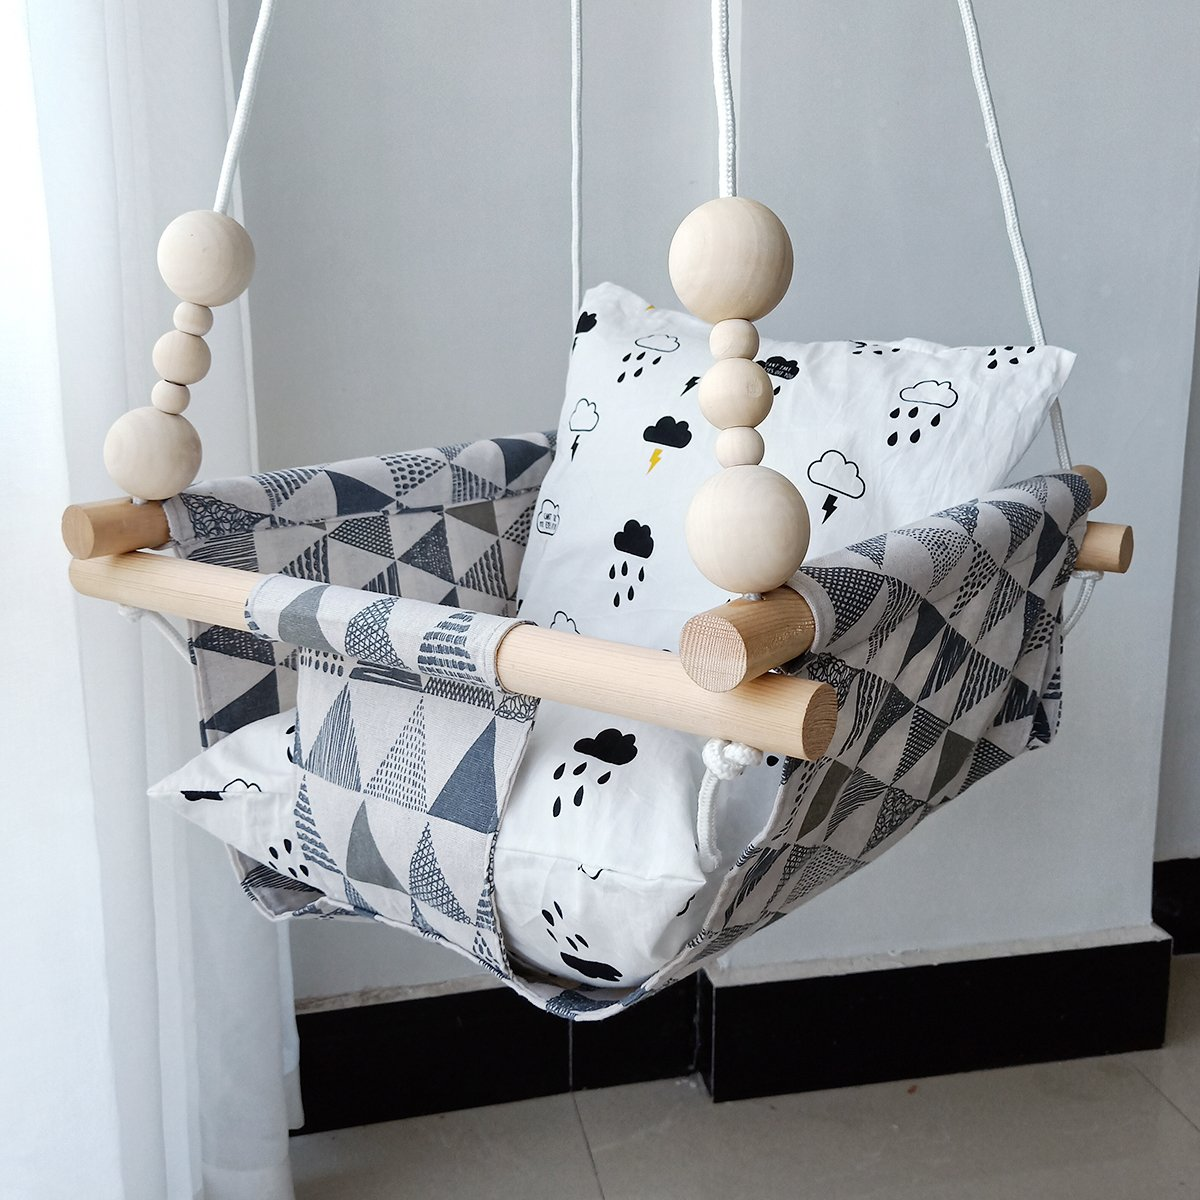 HB.YE Safety Canvas Baby Swing Chair with Wood Protector, Kids Outdoor Swing Seat Hanging Hammock with Cushion and Beads, Warm Nursery Decor - Christmas Tree & Deer BB00159-2UK